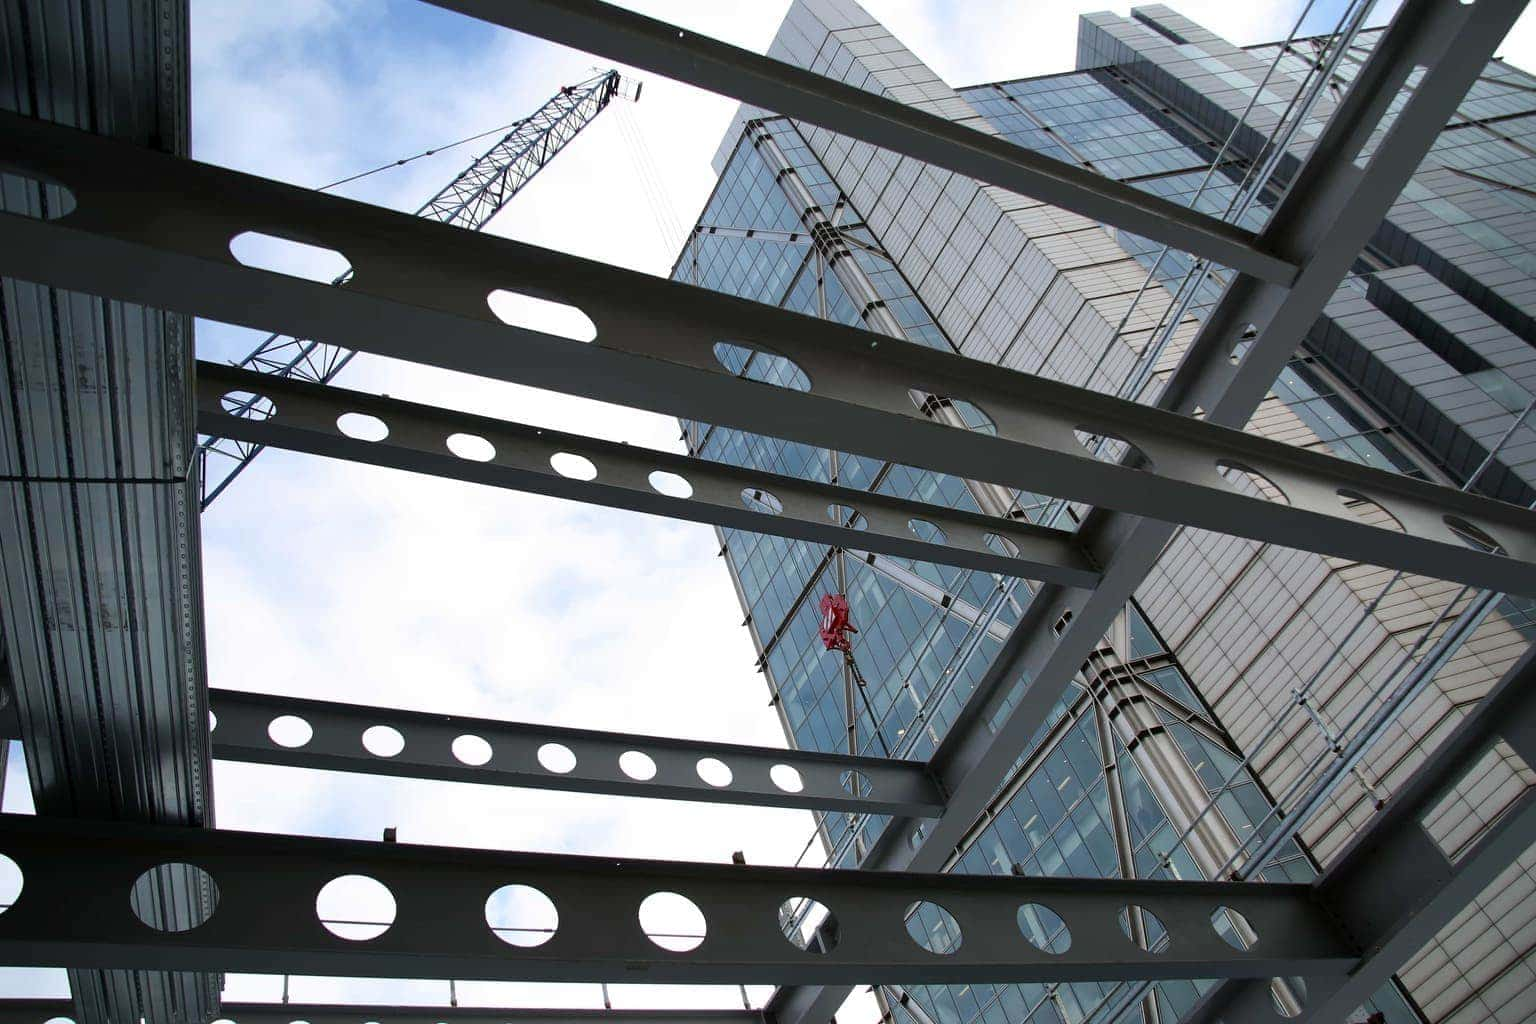 This photo was taken for Brookfield multiplex at there Principal place site in London. By Dpi Photography.